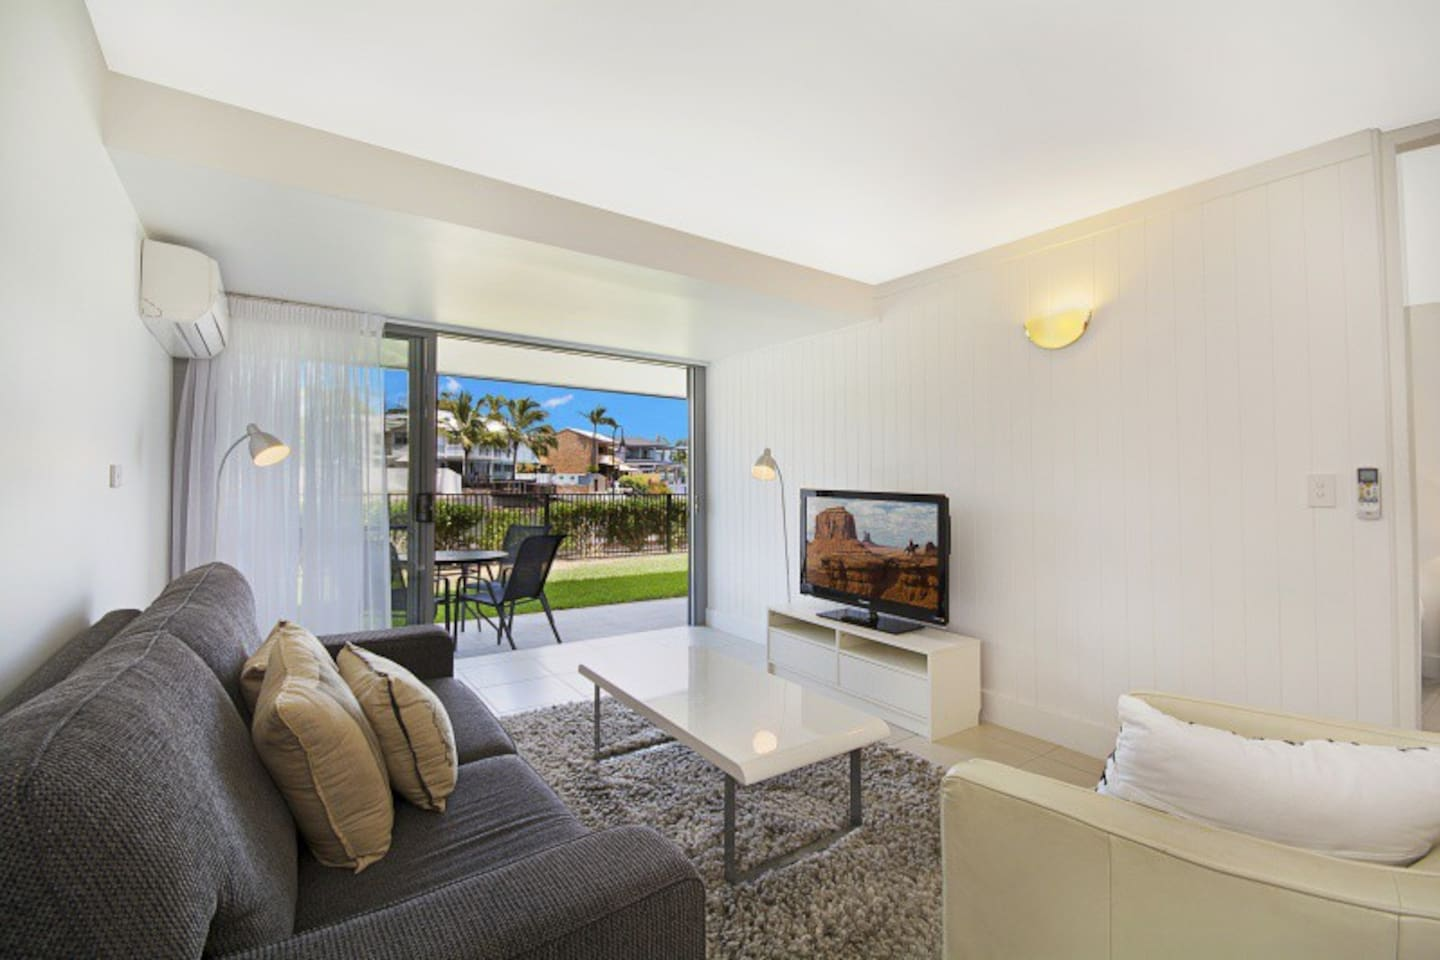 Lounge with glass sliding doors which open up to manicured lawn area with Noosa River and sunset view